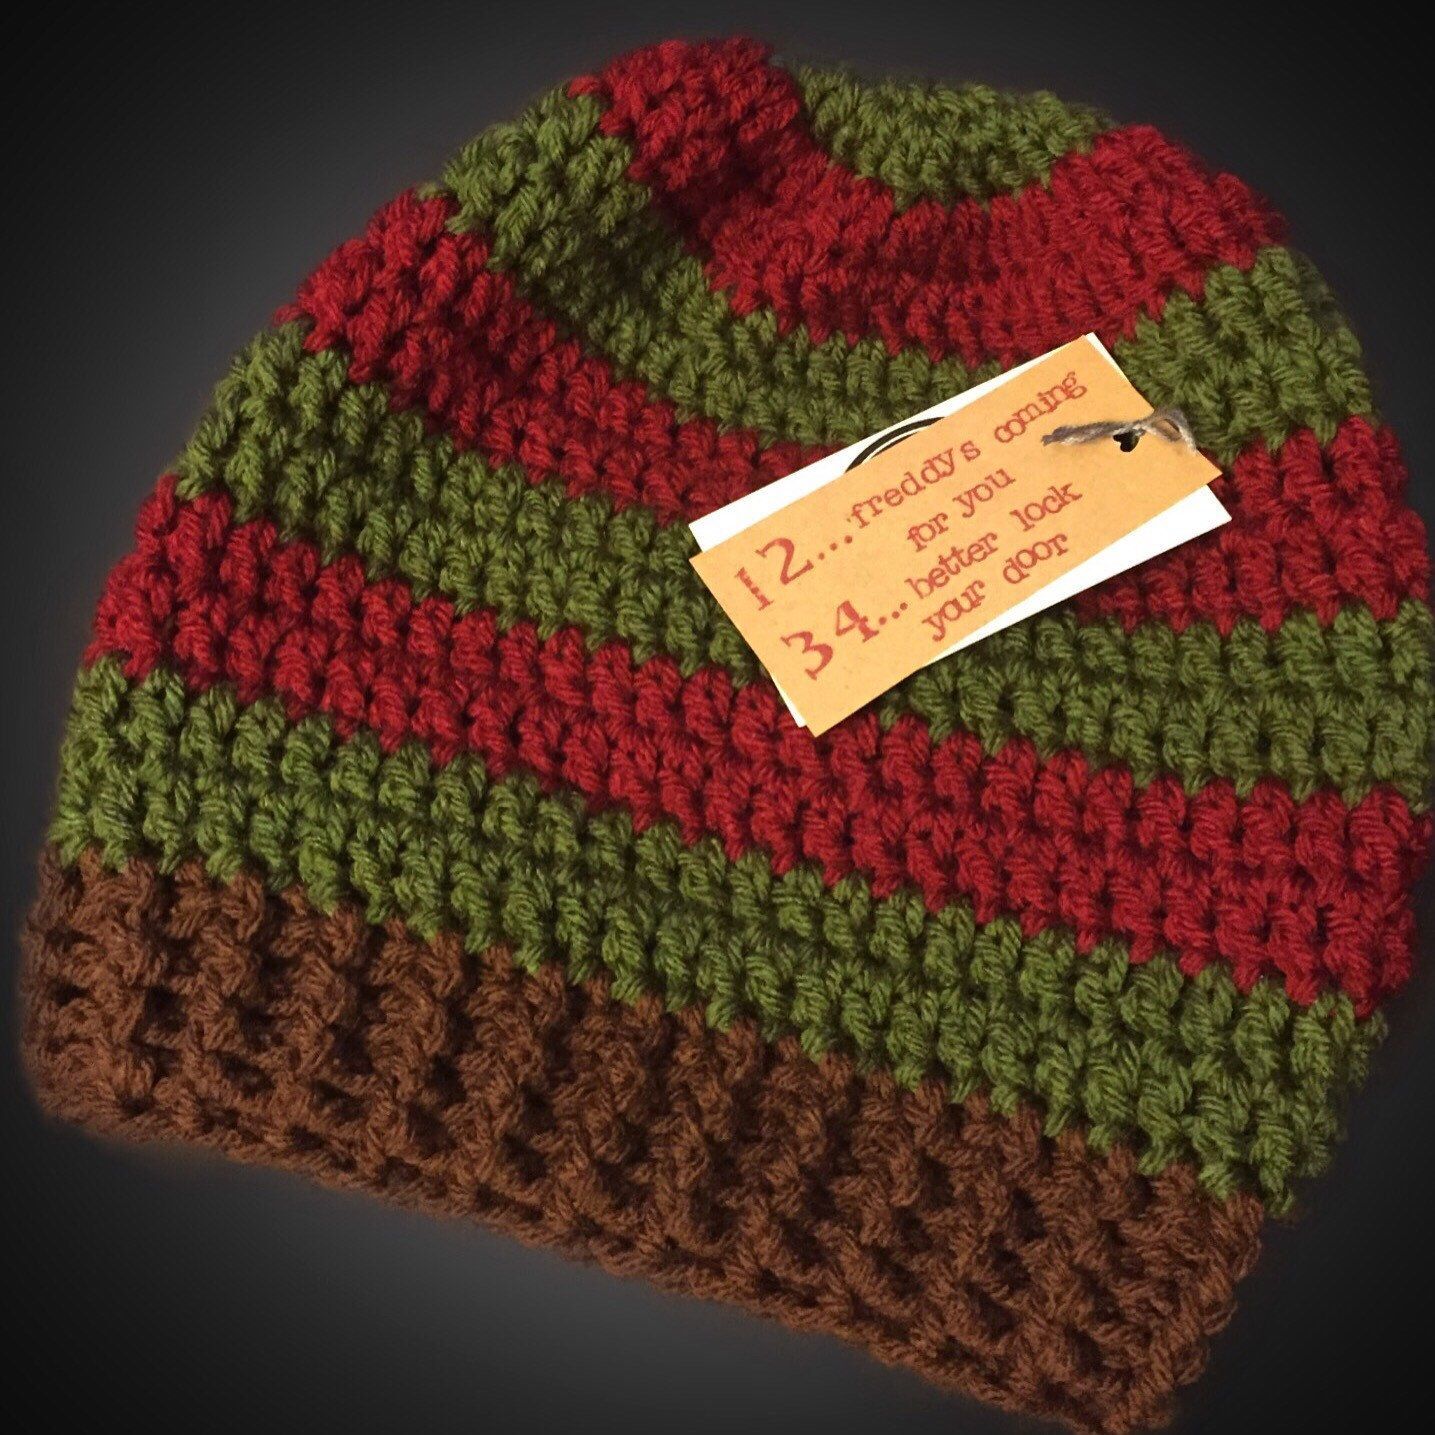 415a8b2a506 Freddy Krueger    Dream Warriors beanie    Nightmare on Elm St    Freddy